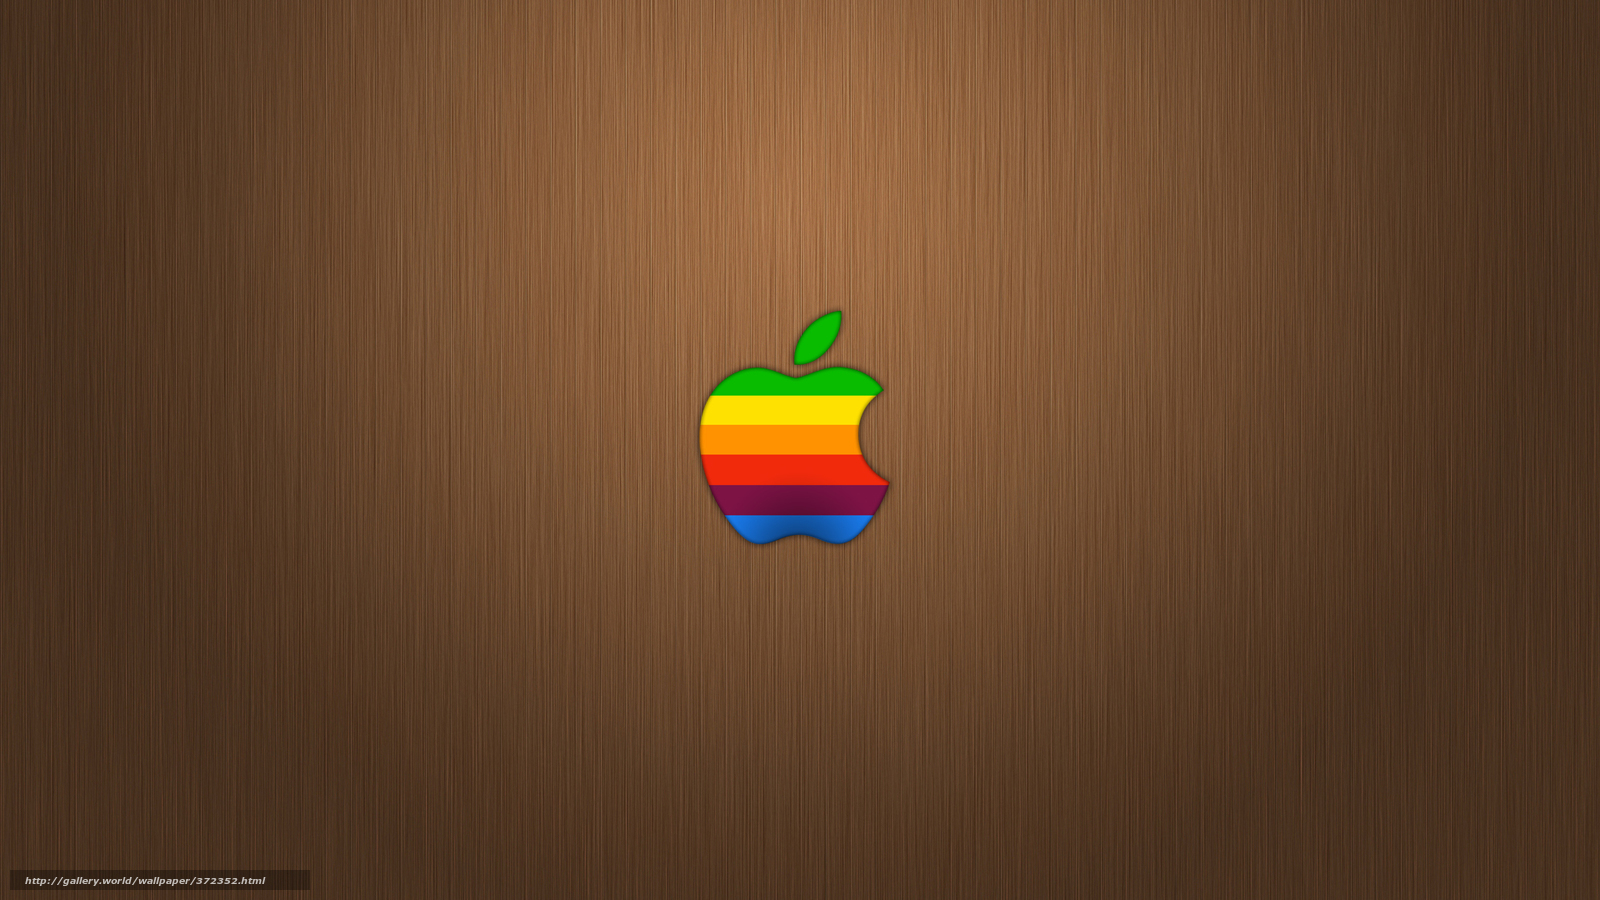 Download wallpaper apple tree hi tech free desktop wallpaper in the